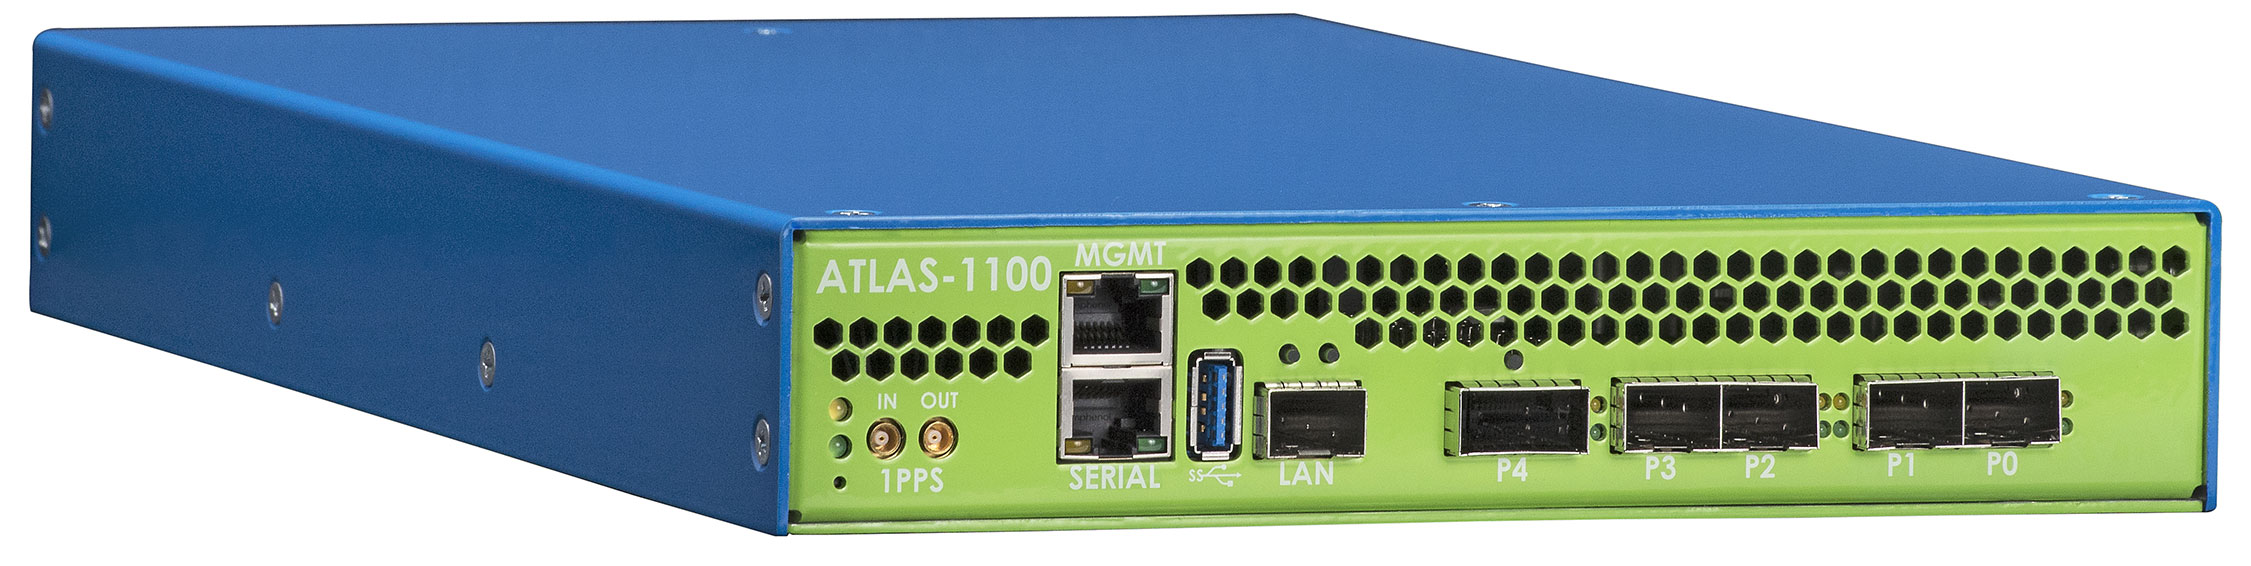 ATLAS-1100 | 40G Packet Processing | Accolade Technology